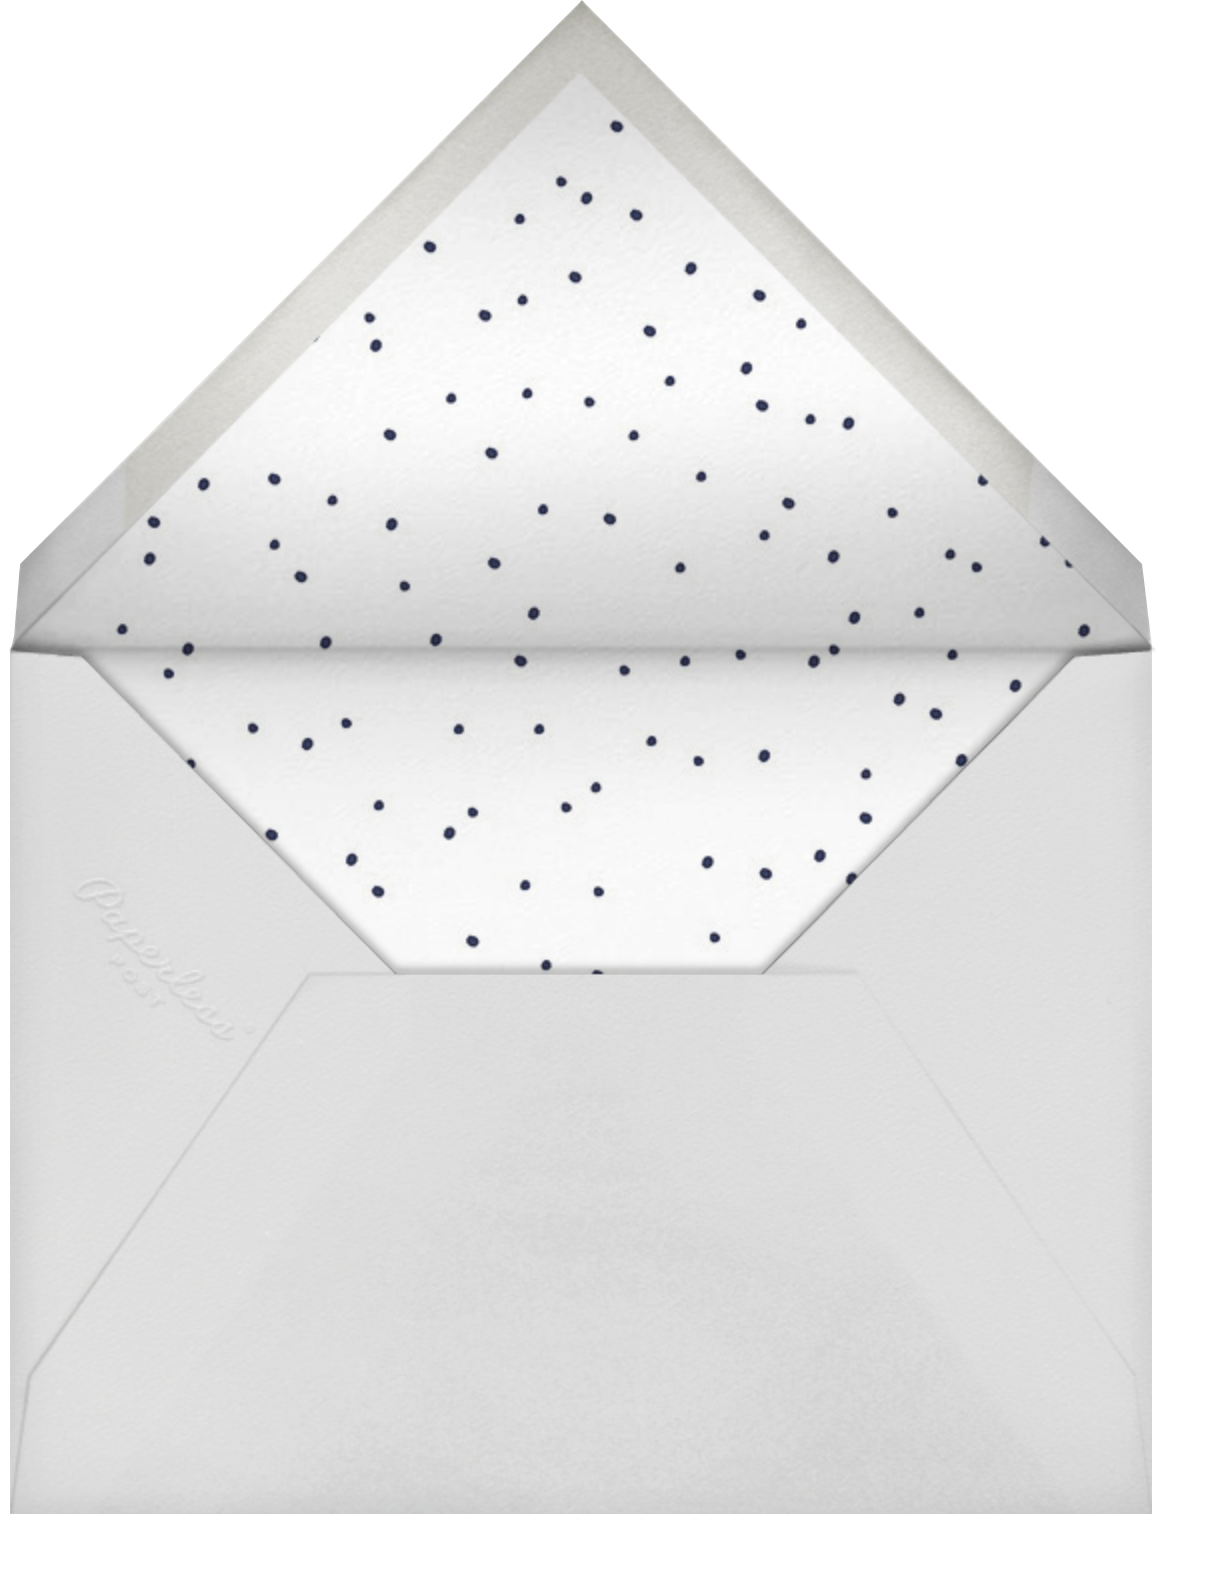 With Hugs and Kisses (Double-Sided) - Silver - Linda and Harriett - Wedding - envelope back